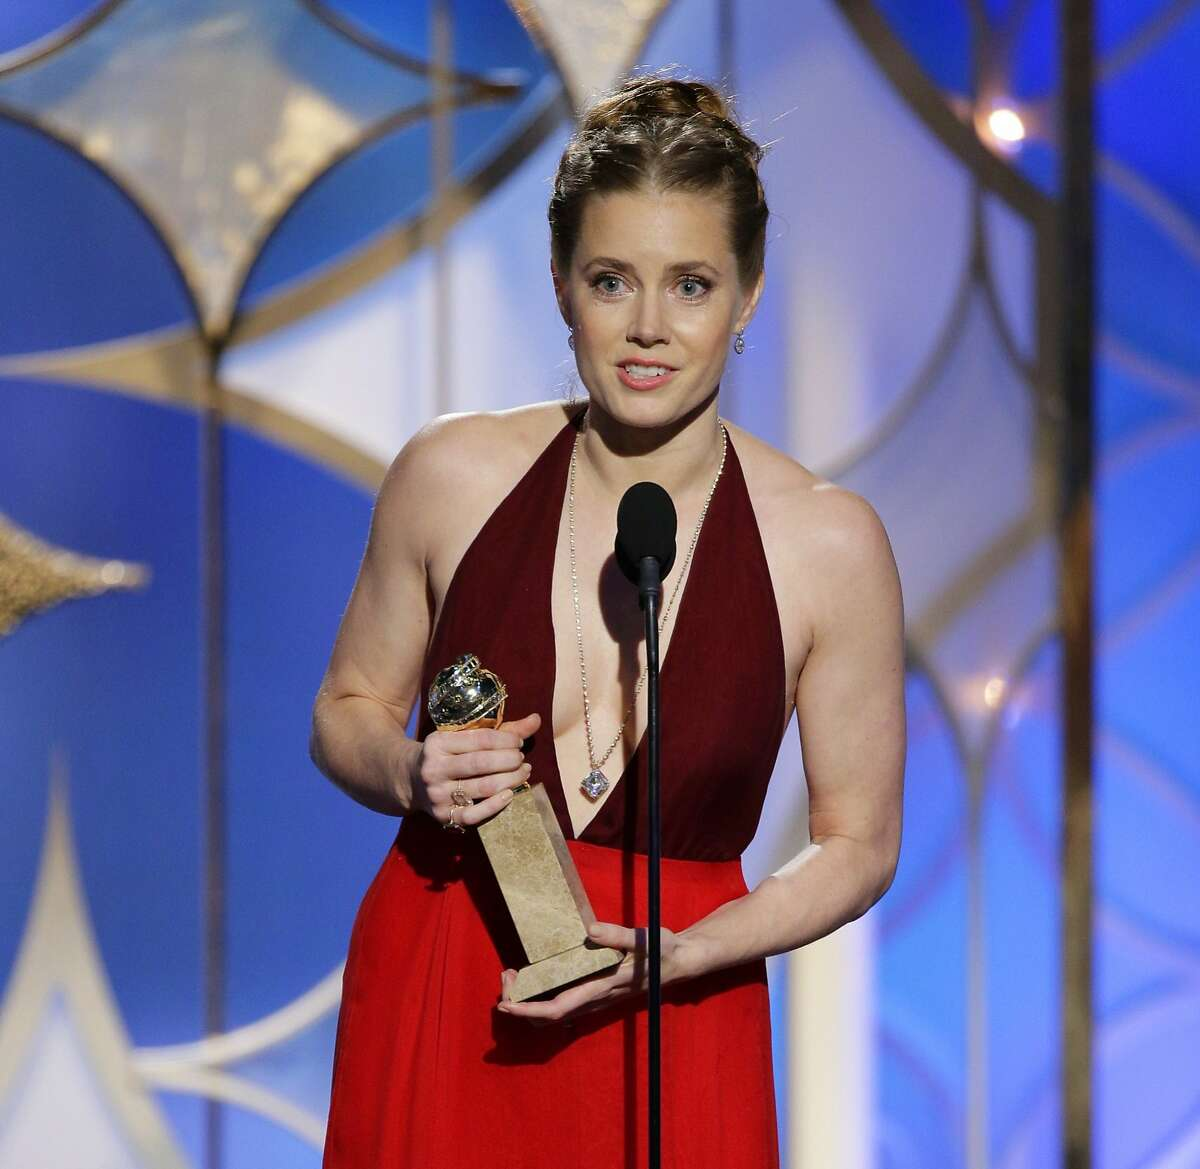 """This image released by NBC shows Amy Adams accepting the award for best actress in a motion picture, musical or comedy for her role in, """"American Hustle"""" during the 71st annual Golden Globe Awards at the Beverly Hilton Hotel on Sunday, Jan. 12, 2014, in Beverly Hills, Calif. (AP Photo/NBC, Paul Drinkwater)"""